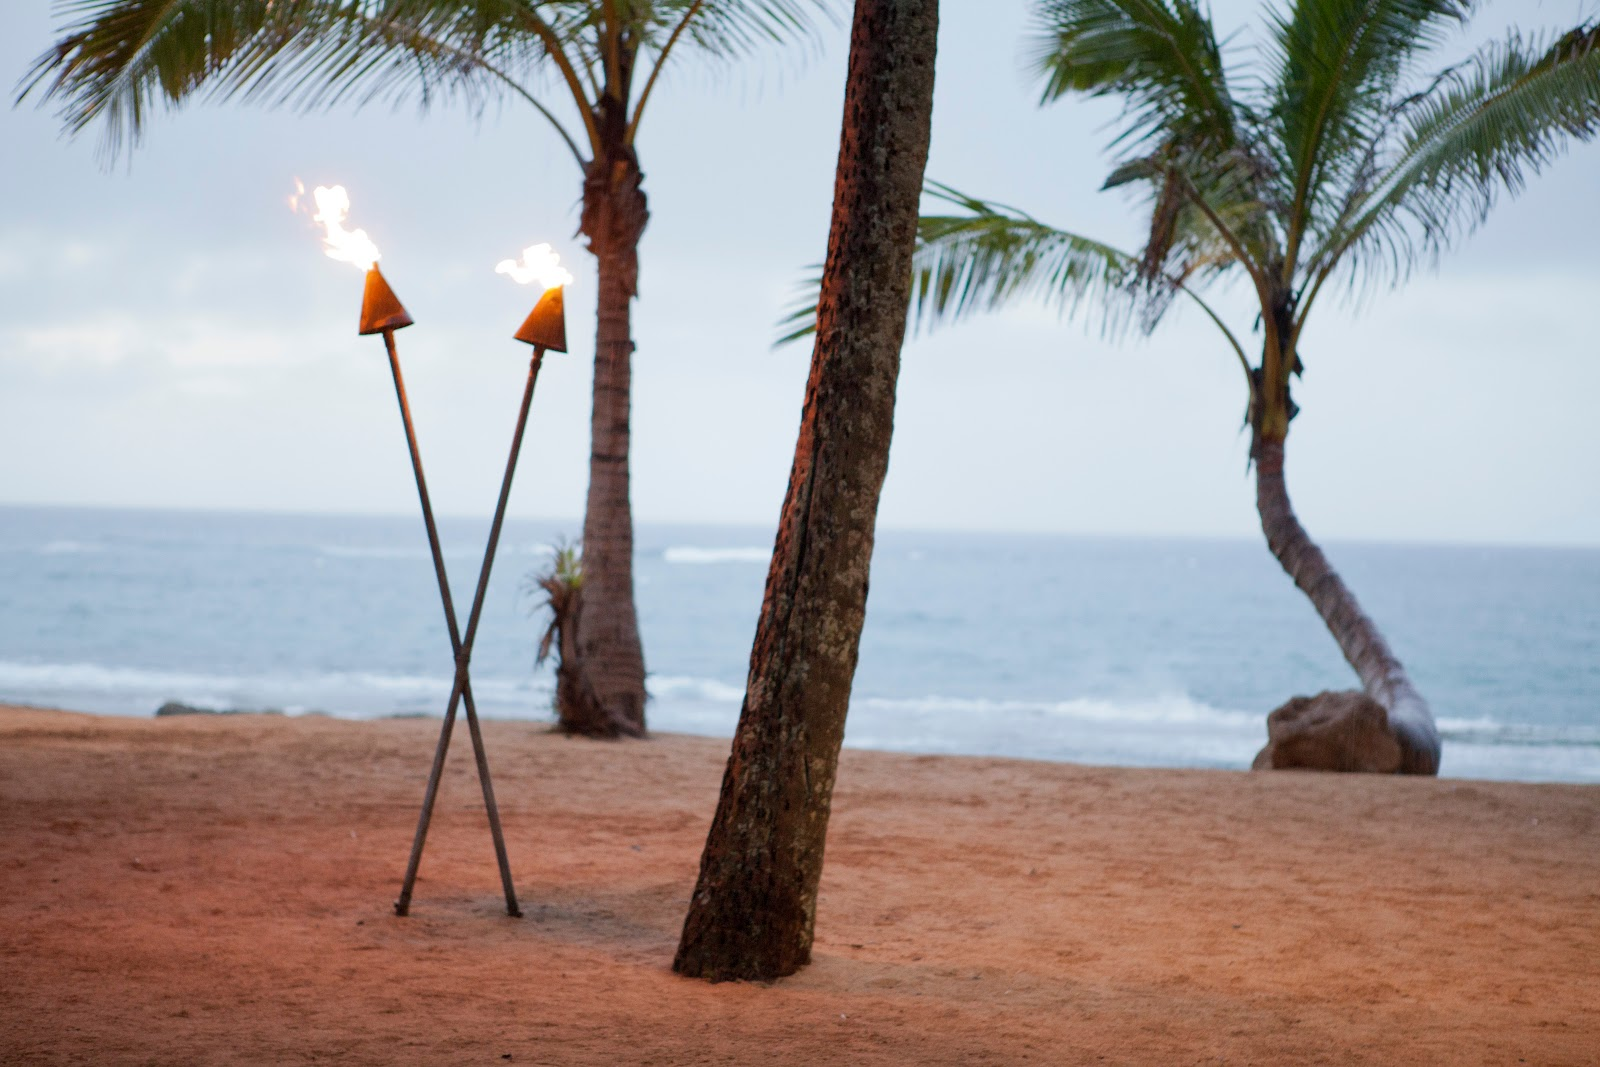 Tiki torches on the beach always offer a little romance.